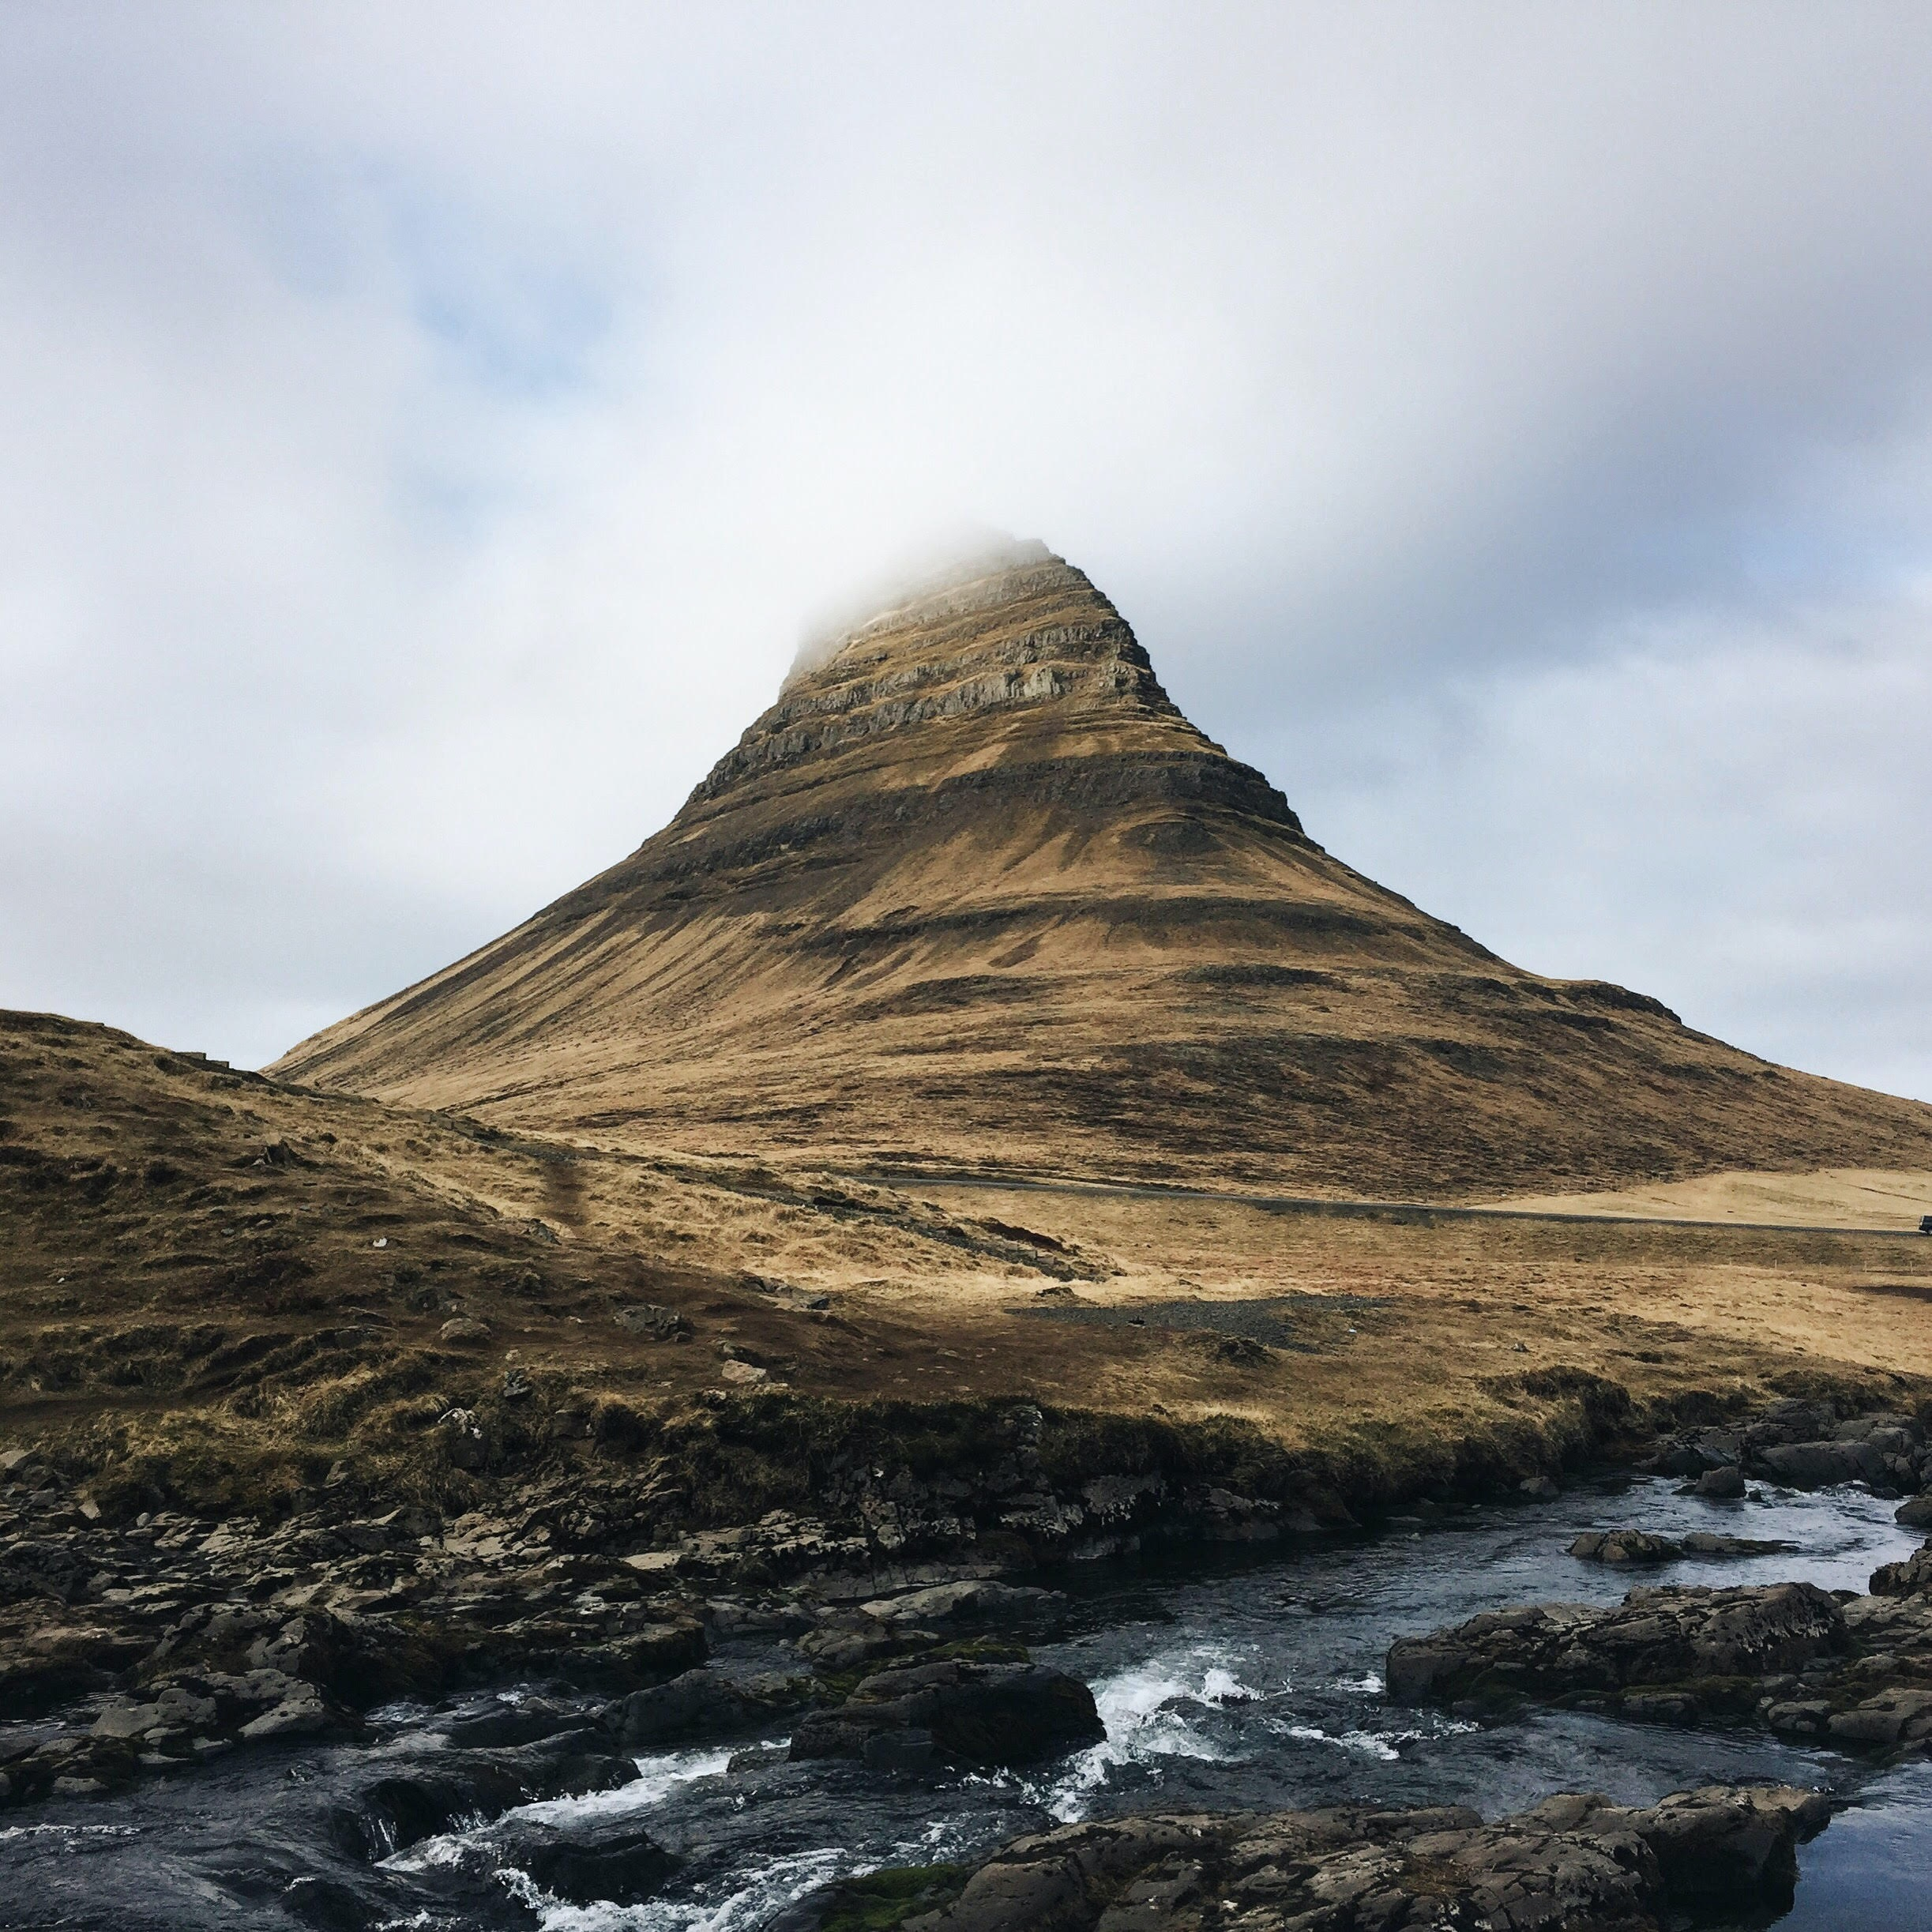 Mountain in Kirkjufell disappears into the cloudy sky